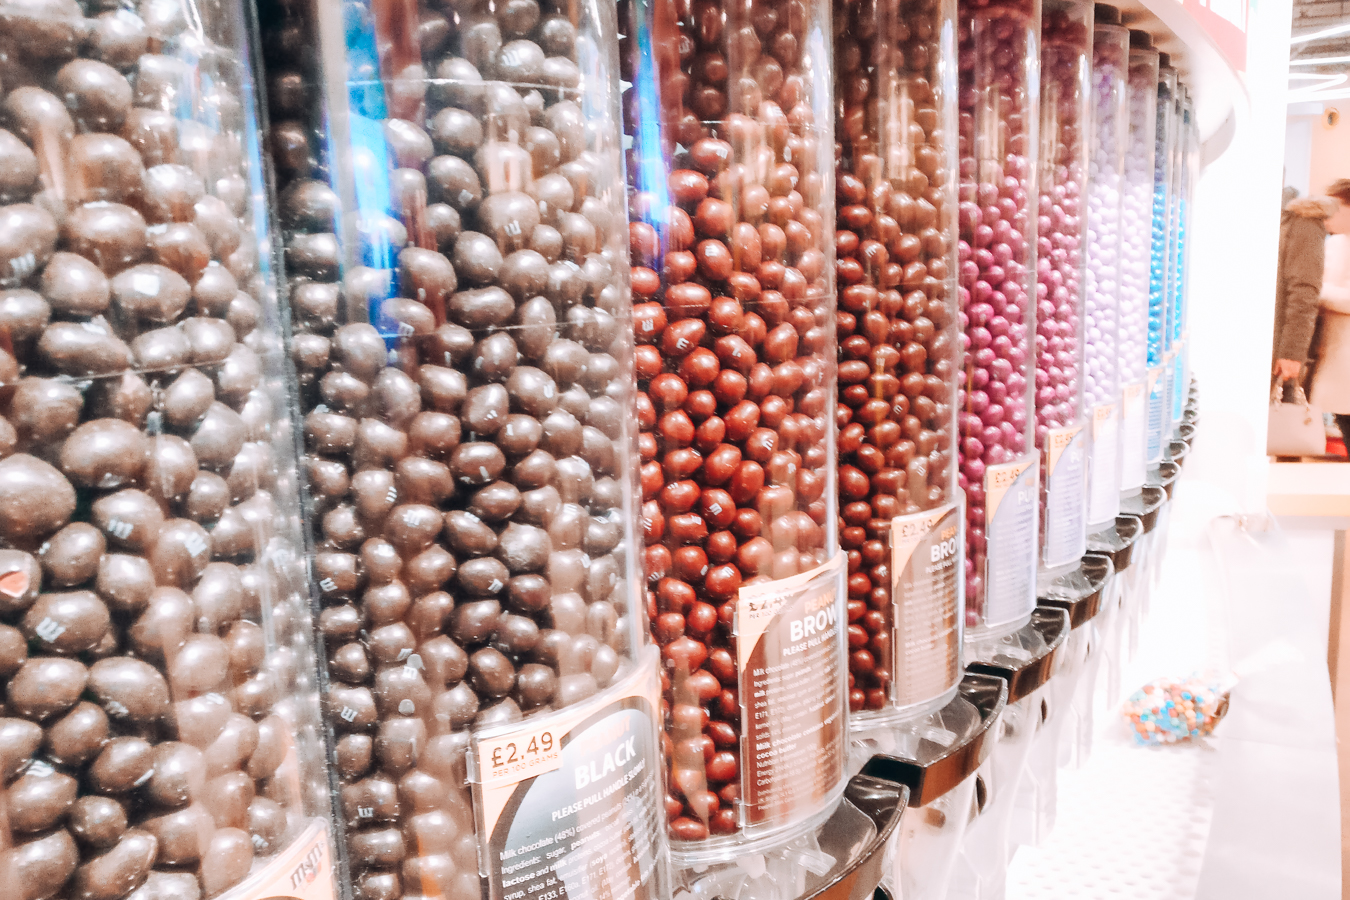 M&M's at M&M's London